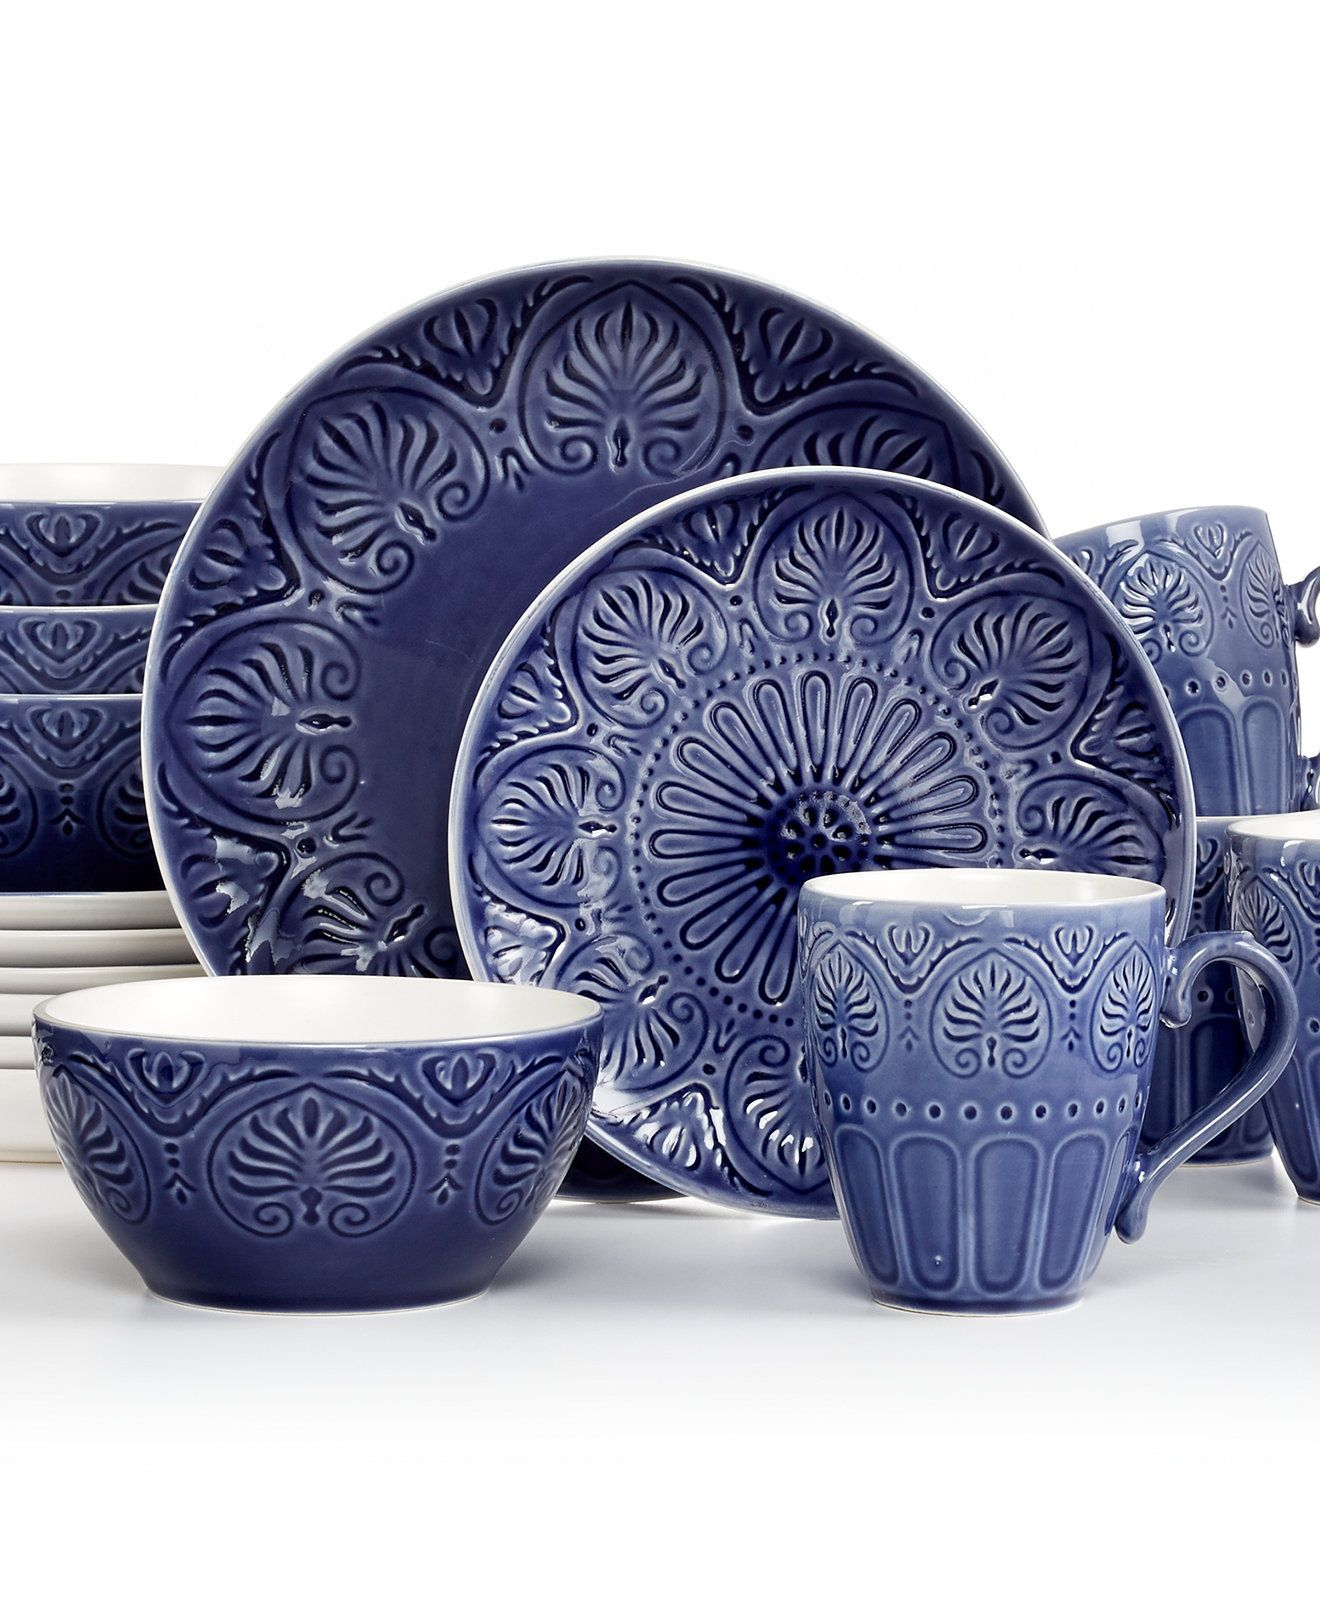 Pfaltzgraff Dolce Cobalt 16-Piece Set - Casual Dinnerware - Dining u0026 Entertaining - Macyu0027s  sc 1 st  Pinterest & Pfaltzgraff Dolce Cobalt 16-Piece Set - Casual Dinnerware - Dining ...